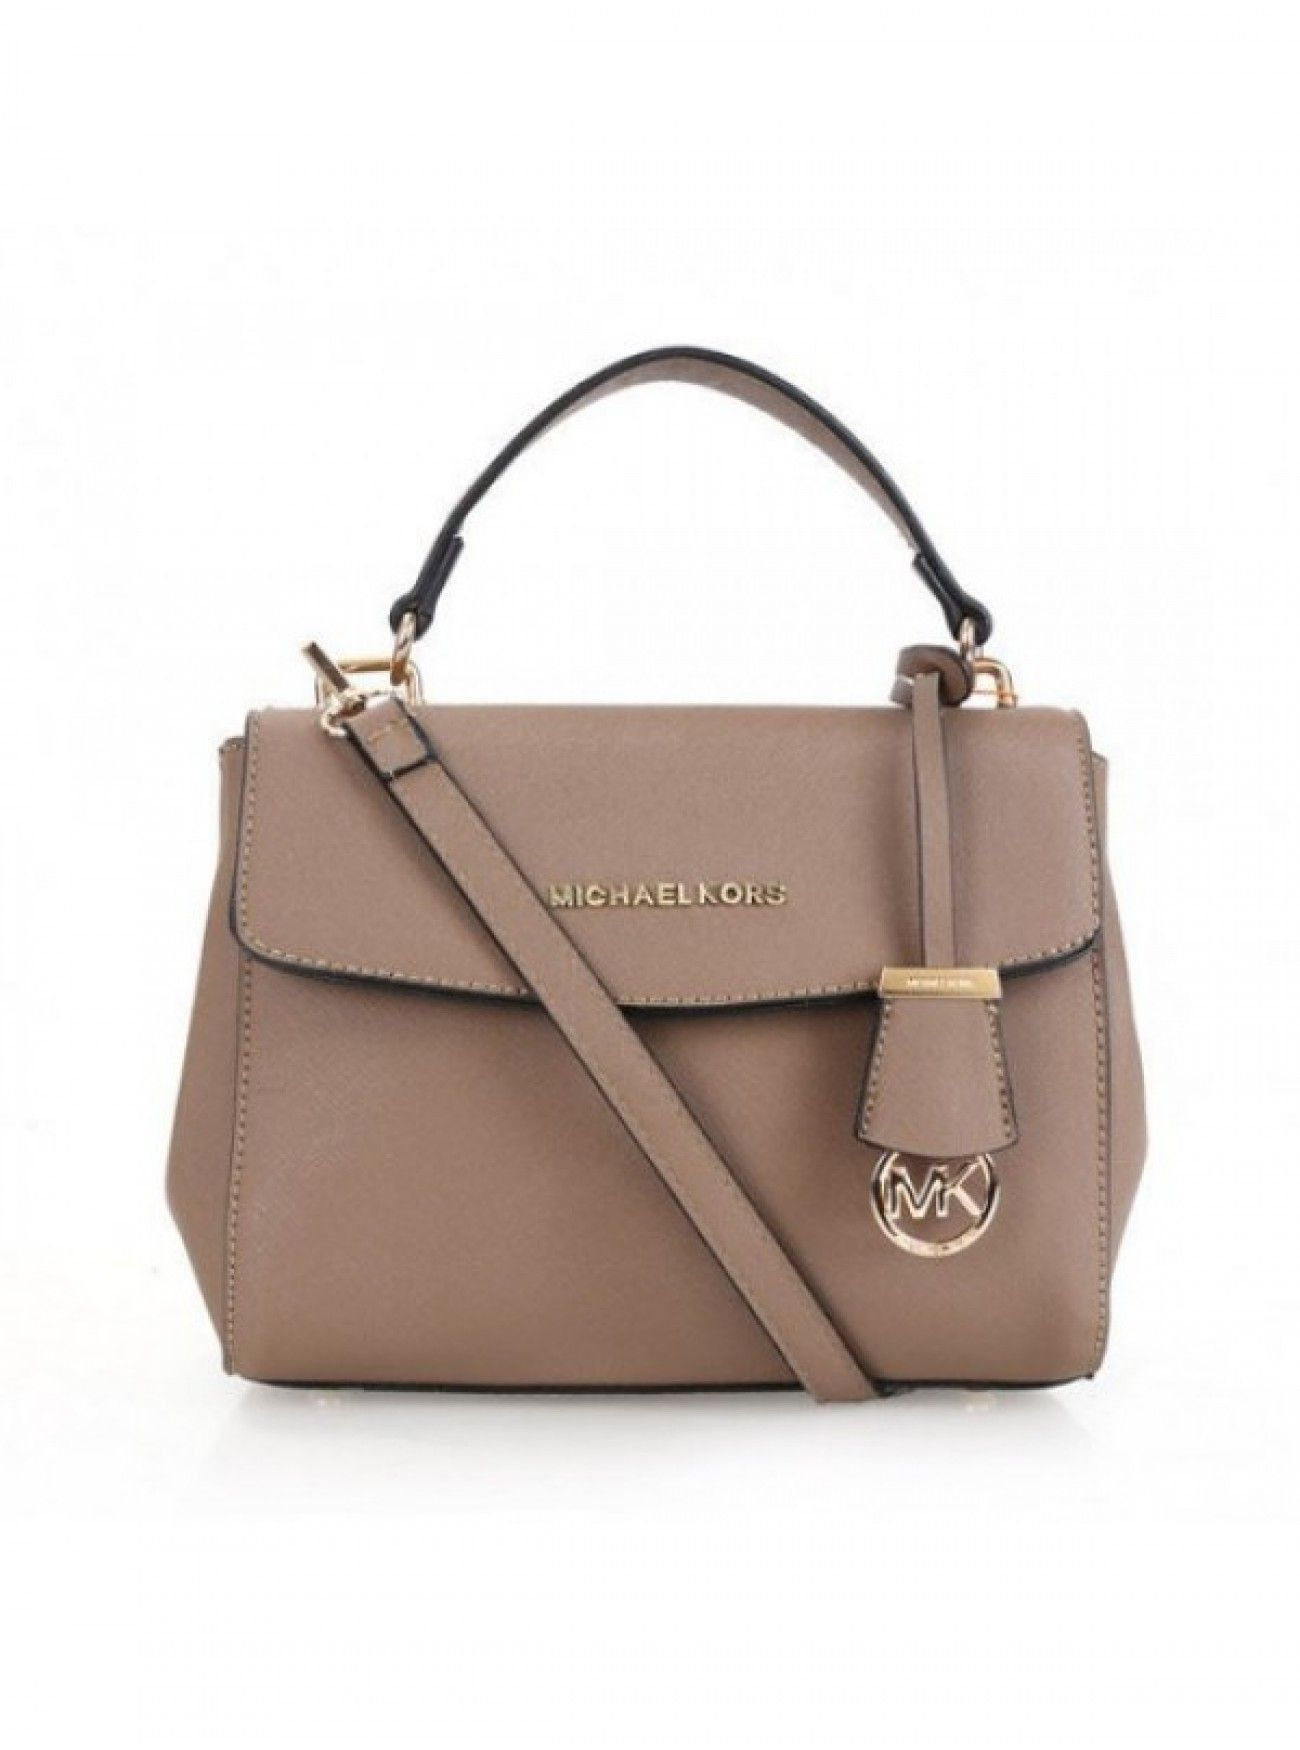 f97f30e10880 Price Michael Kors Saffiano Leather Charm Satchel Light Tan Canada Discount  Online #pursesonlinecanada